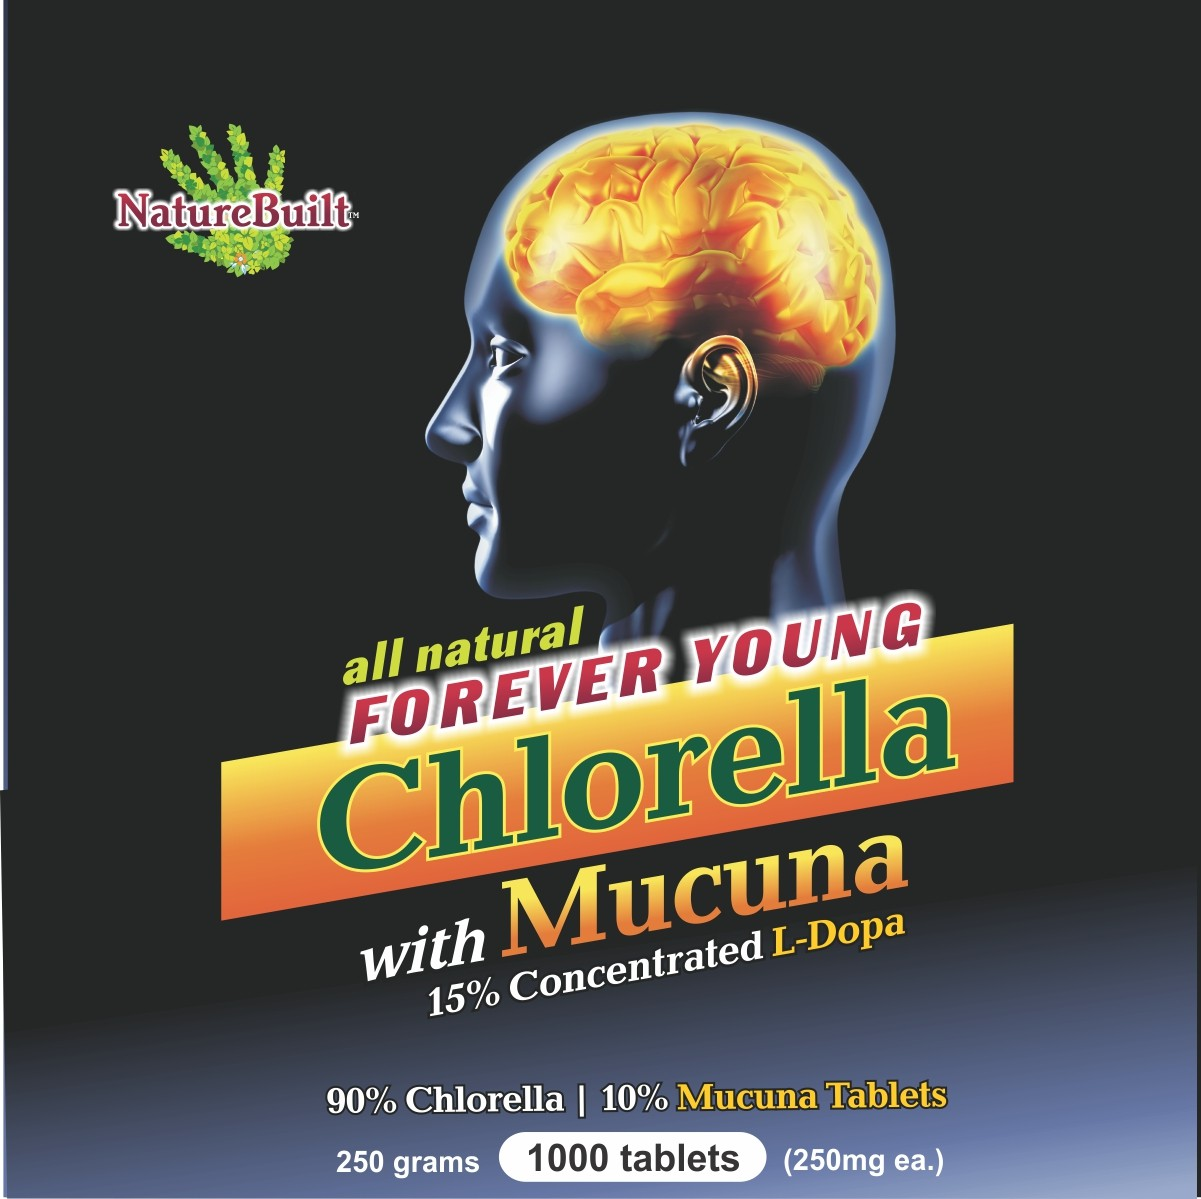 90% Chlorella 10% Mucuna Tablets